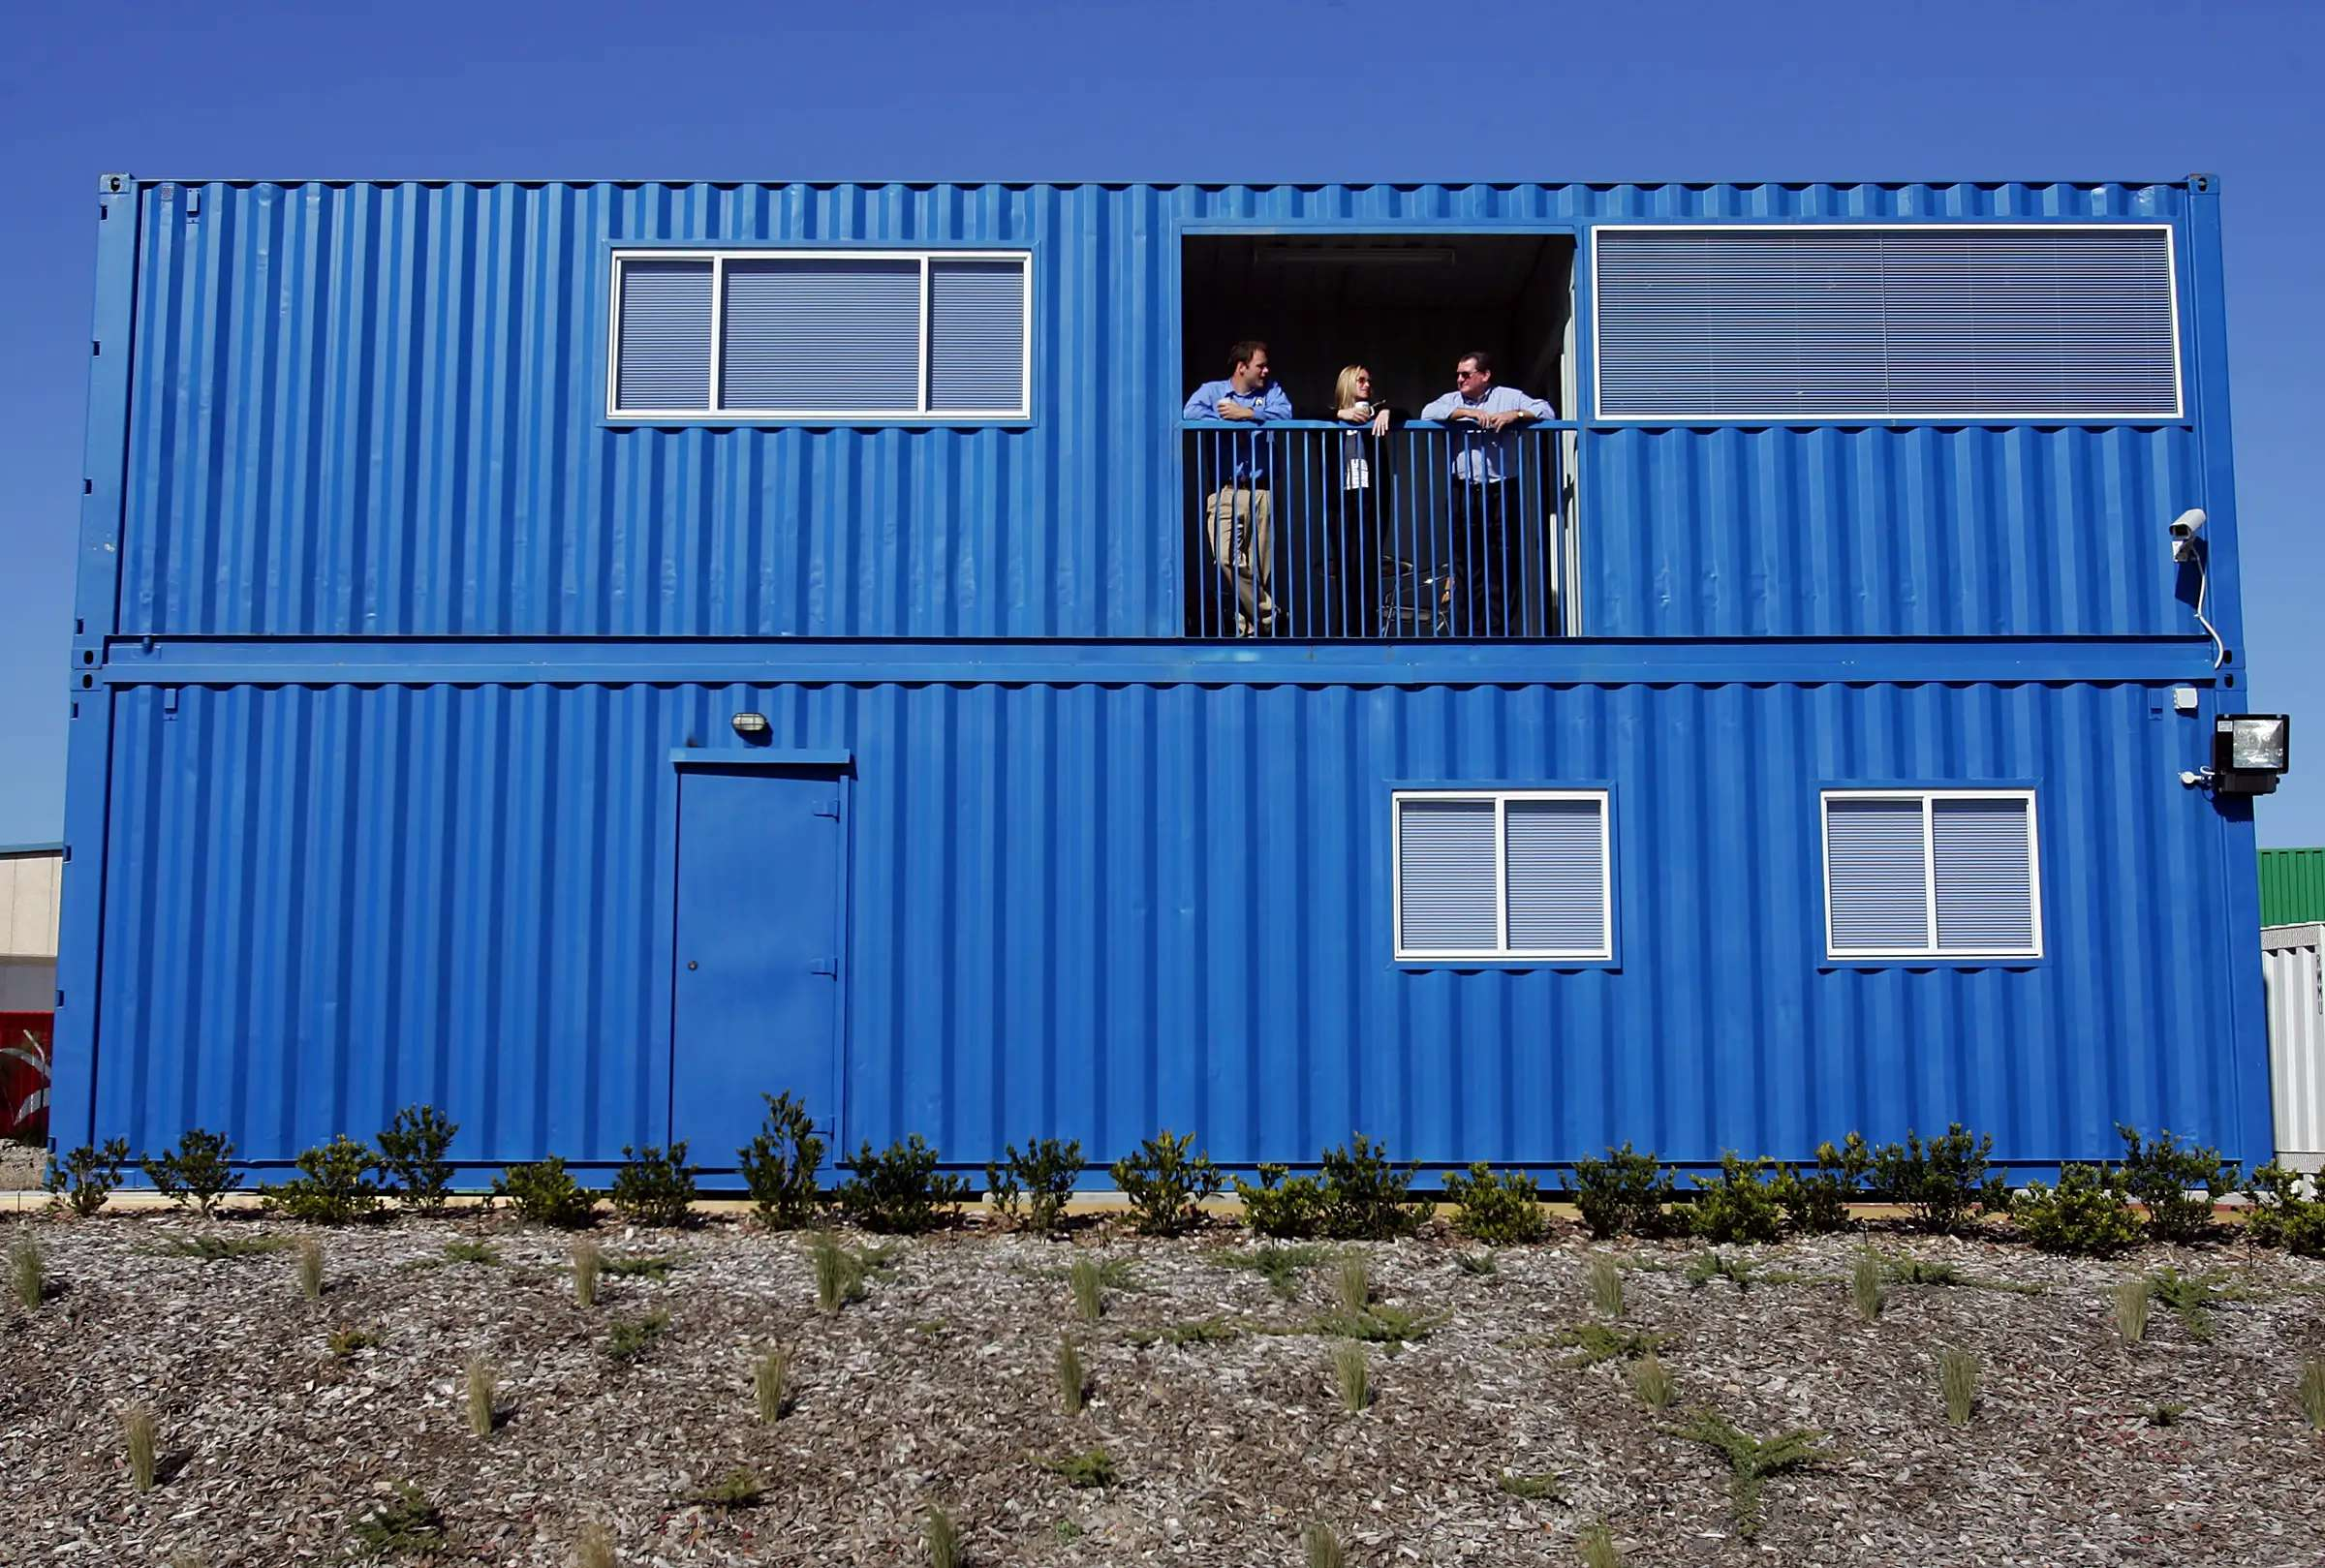 This three-bedroom home was made from four shipping containers in Sydney. It was priced at $130,000, and has two bathrooms, timber floors, a kitchen, laundry room, and can be pulled apart and transported if need be.